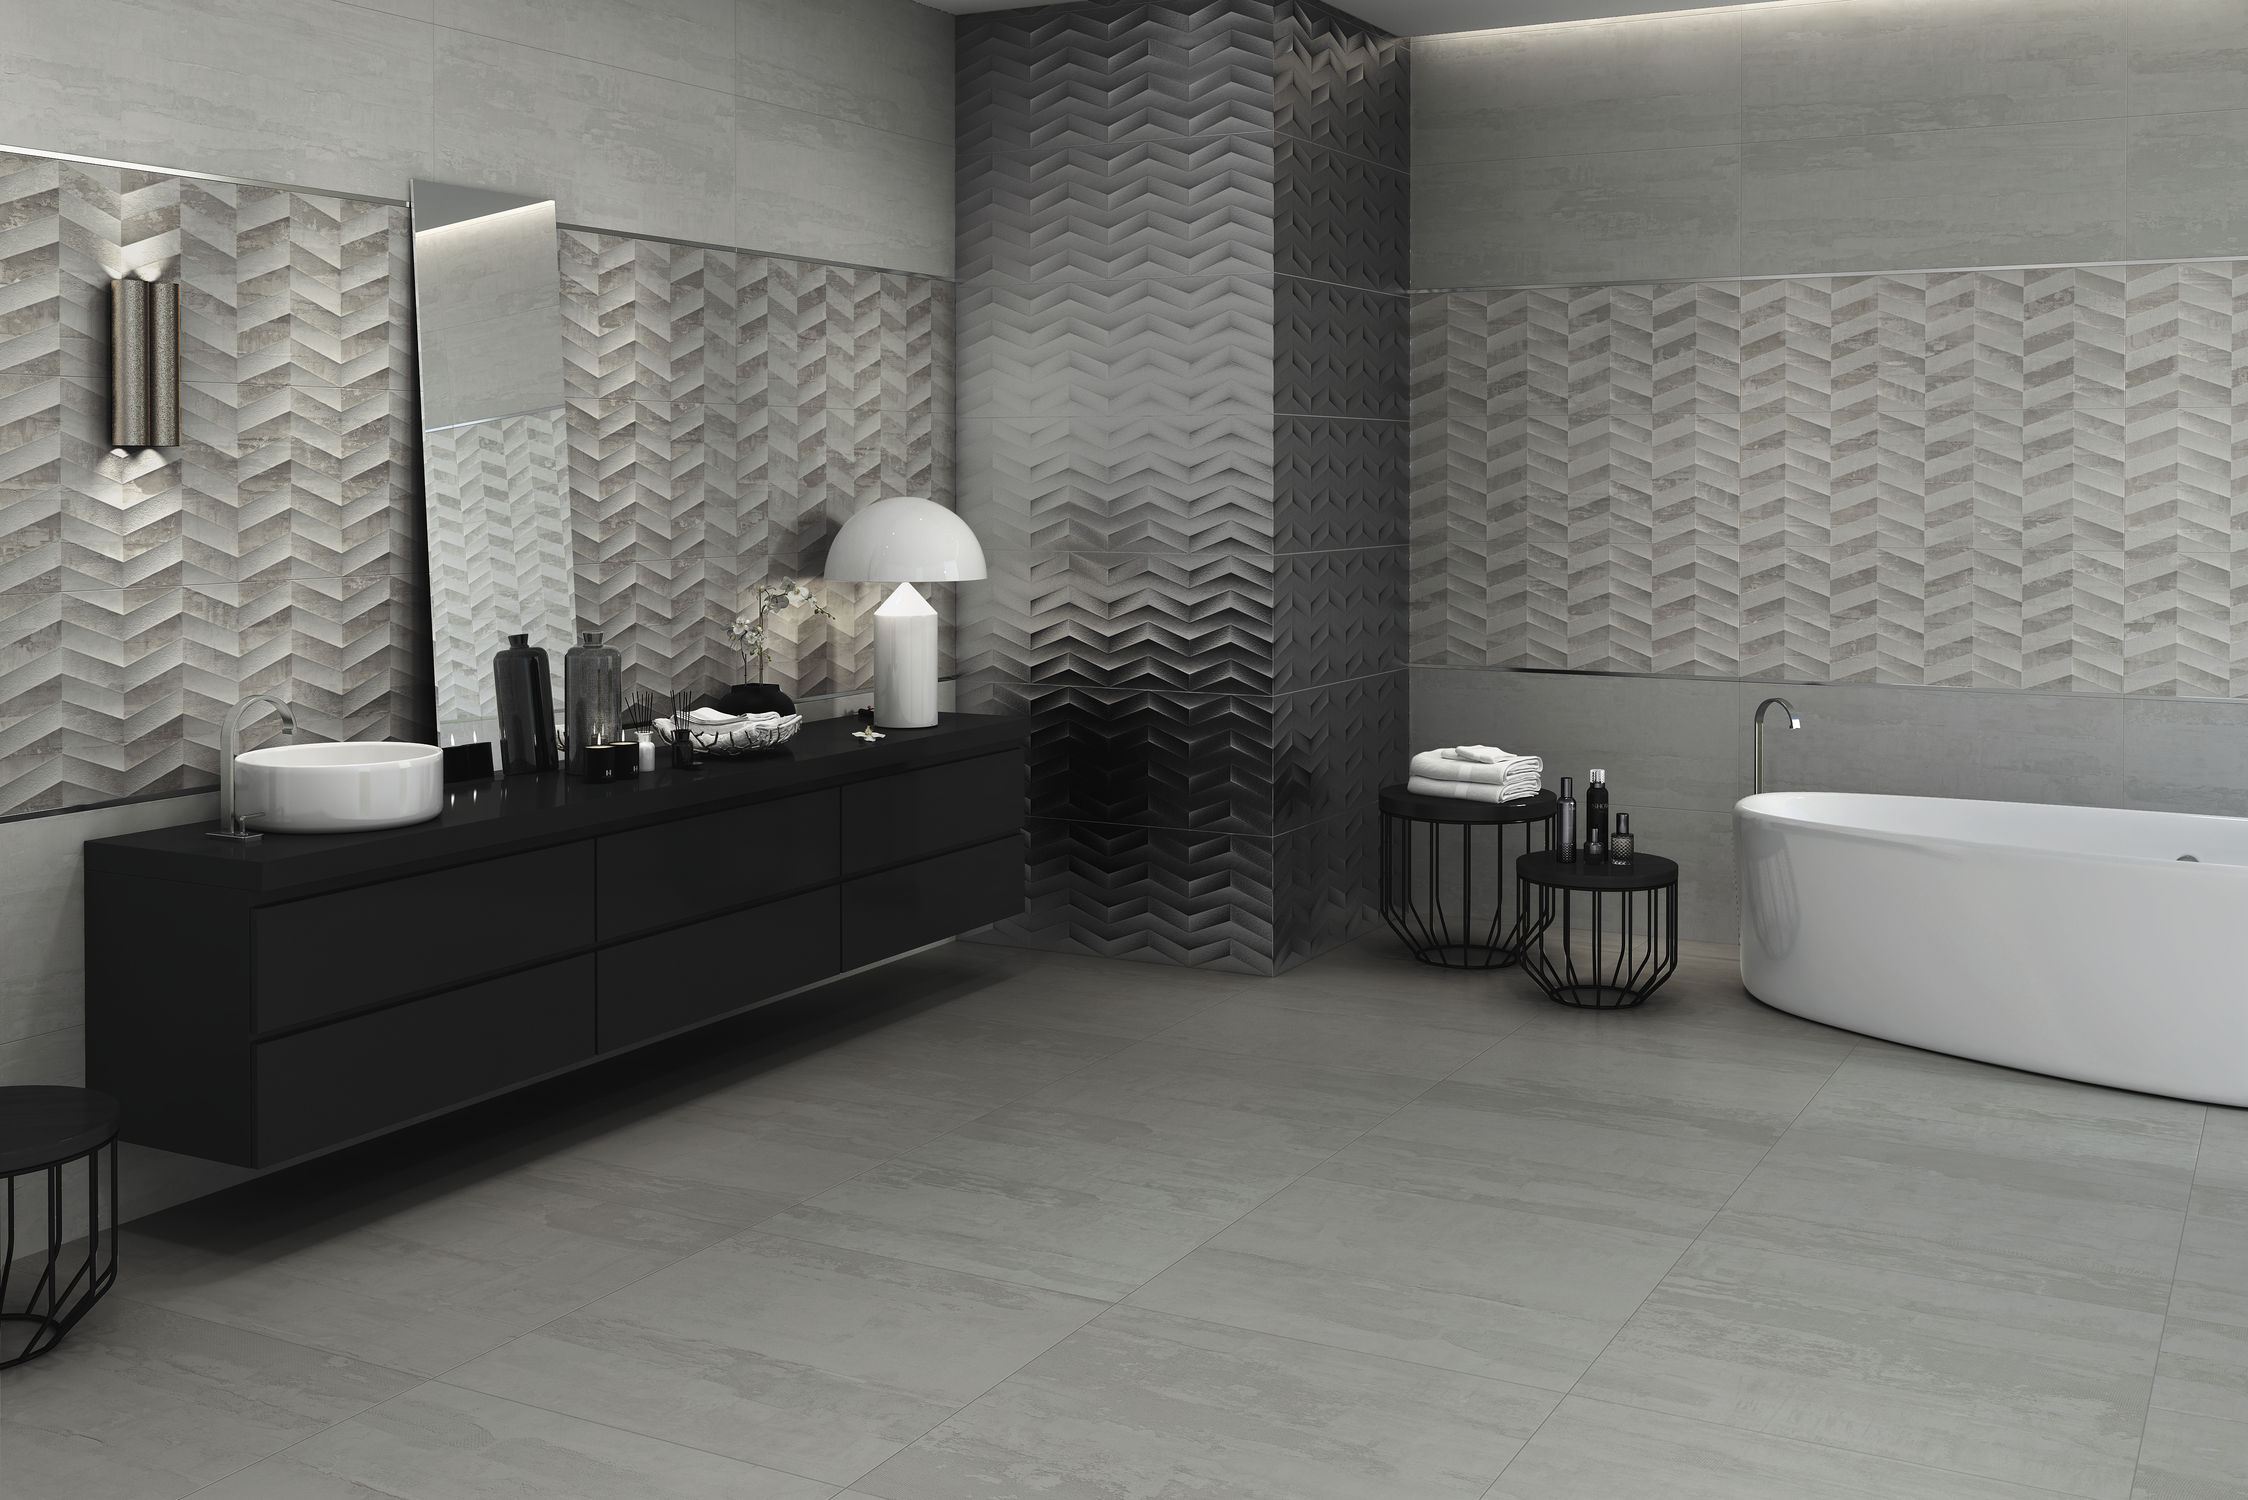 Bathroom tile / living room / wall / porcelain stoneware - JACQUARD ...